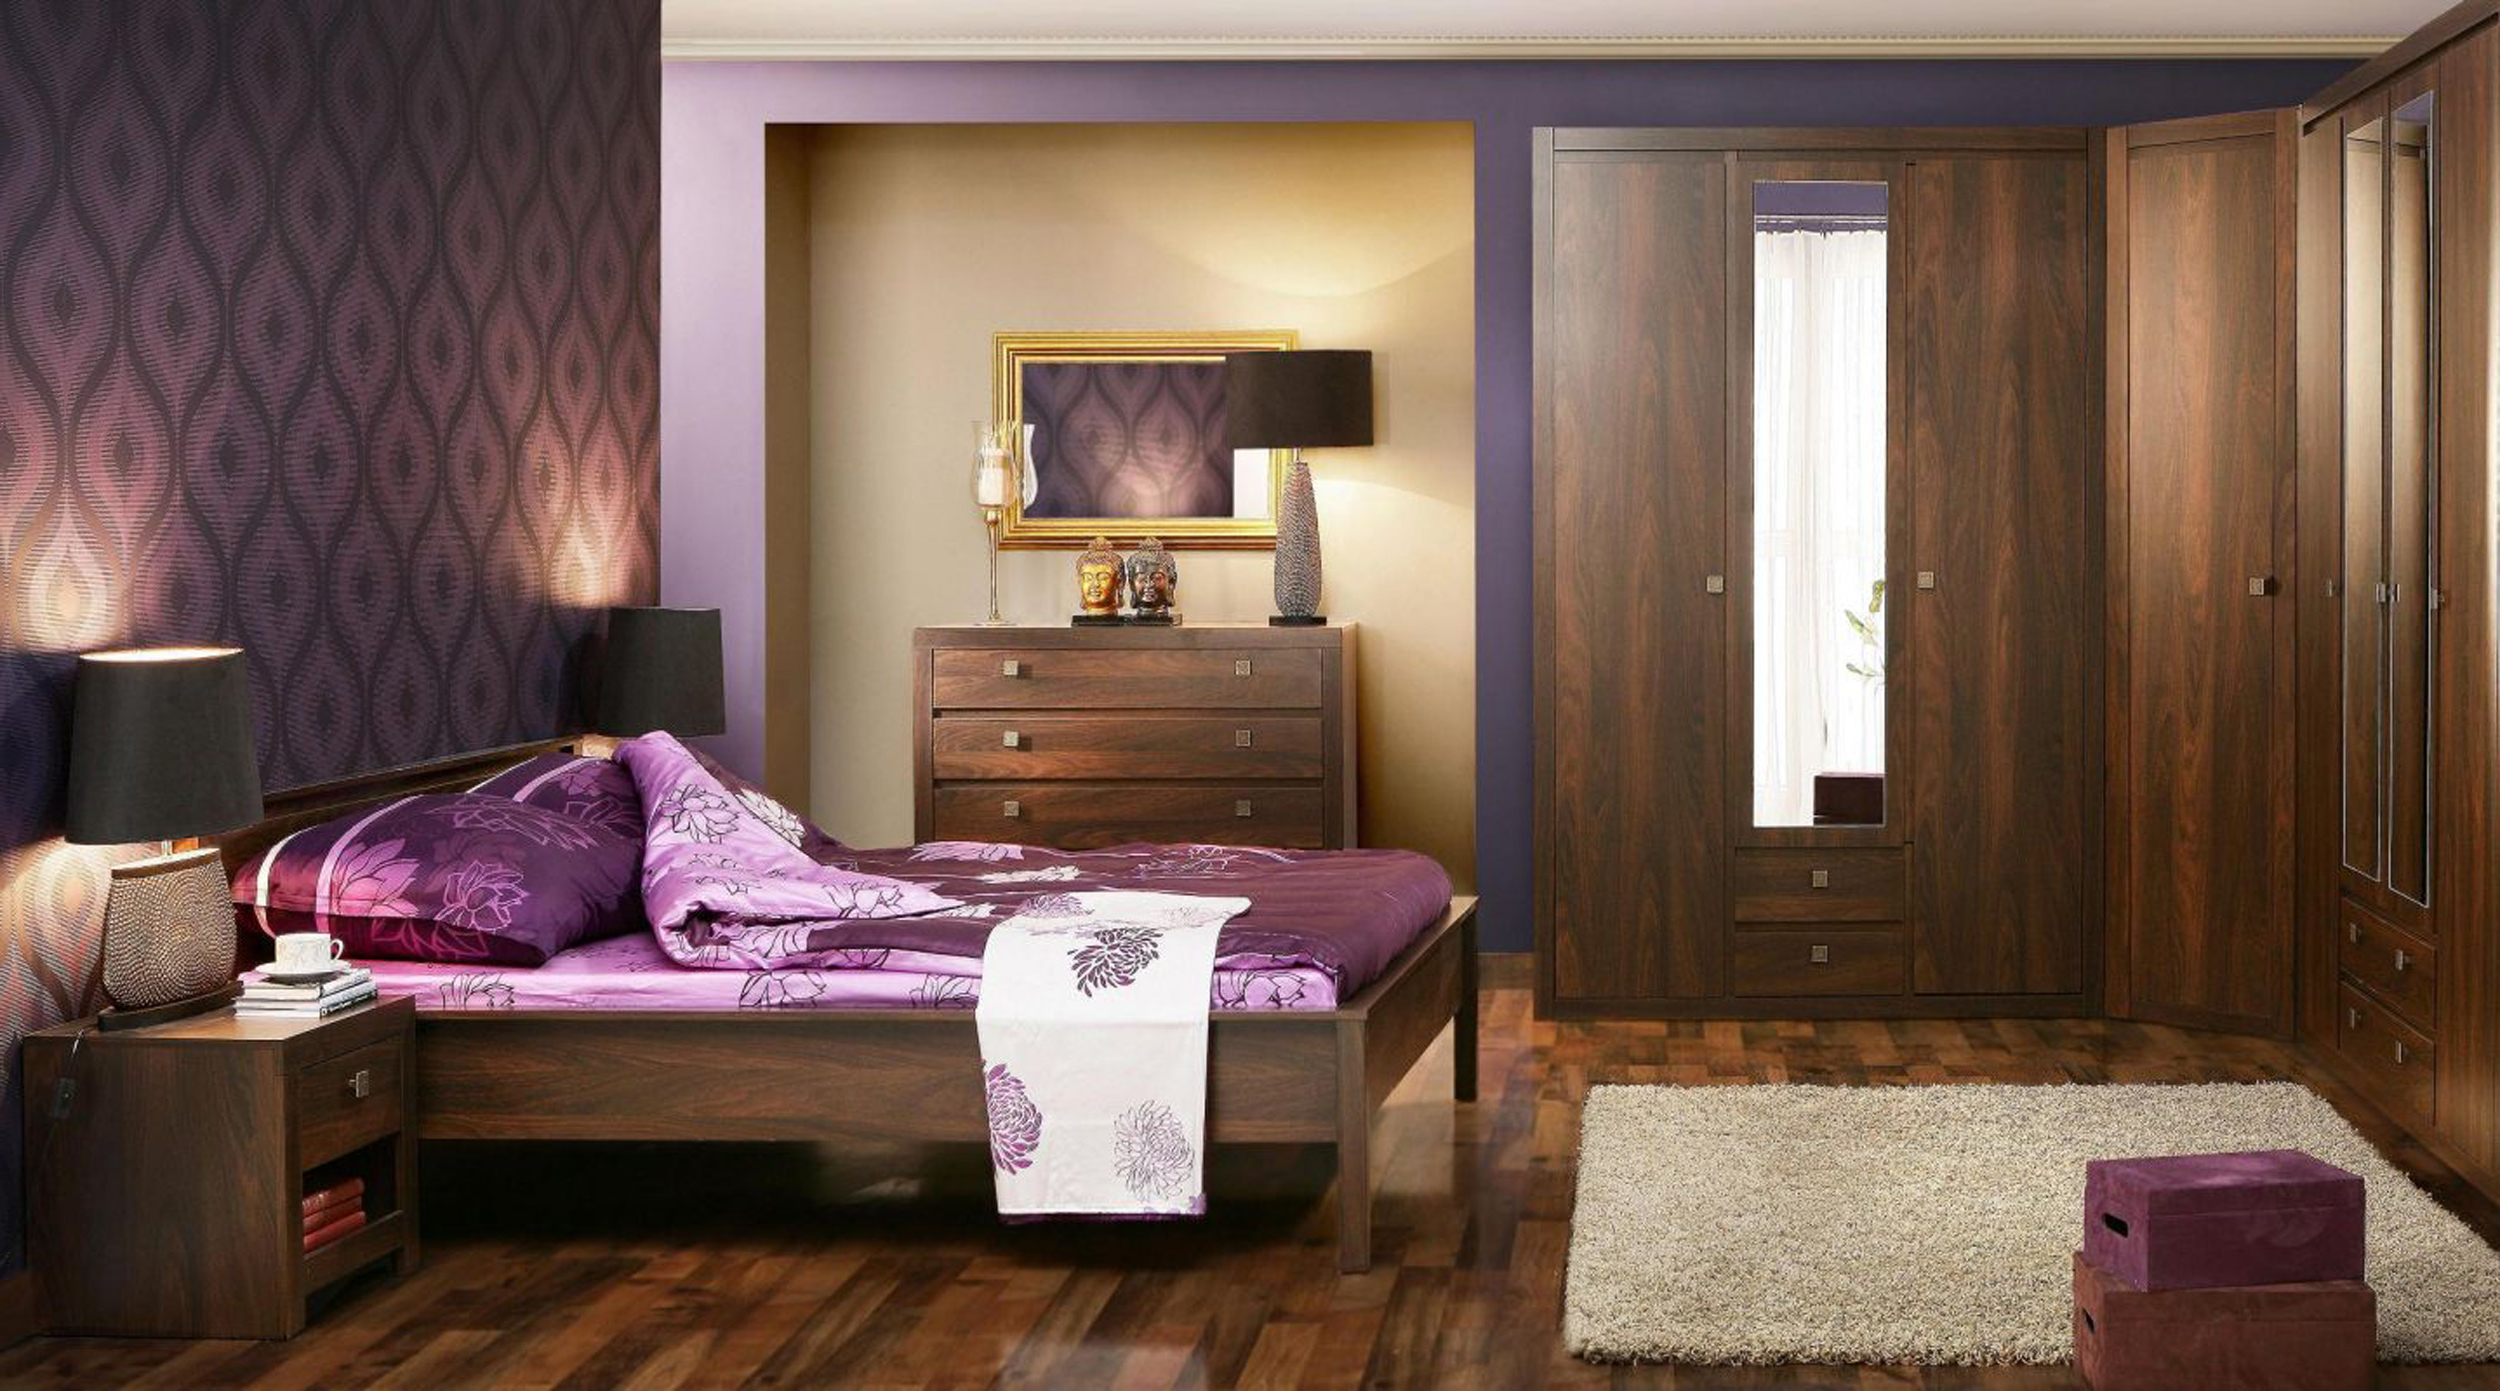 Minimalist Apartment Bathroom With Classic Furniture And Purple Wall Paint Color And Wooden Floor Minimalist Apartment Design (Image 3 of 25)